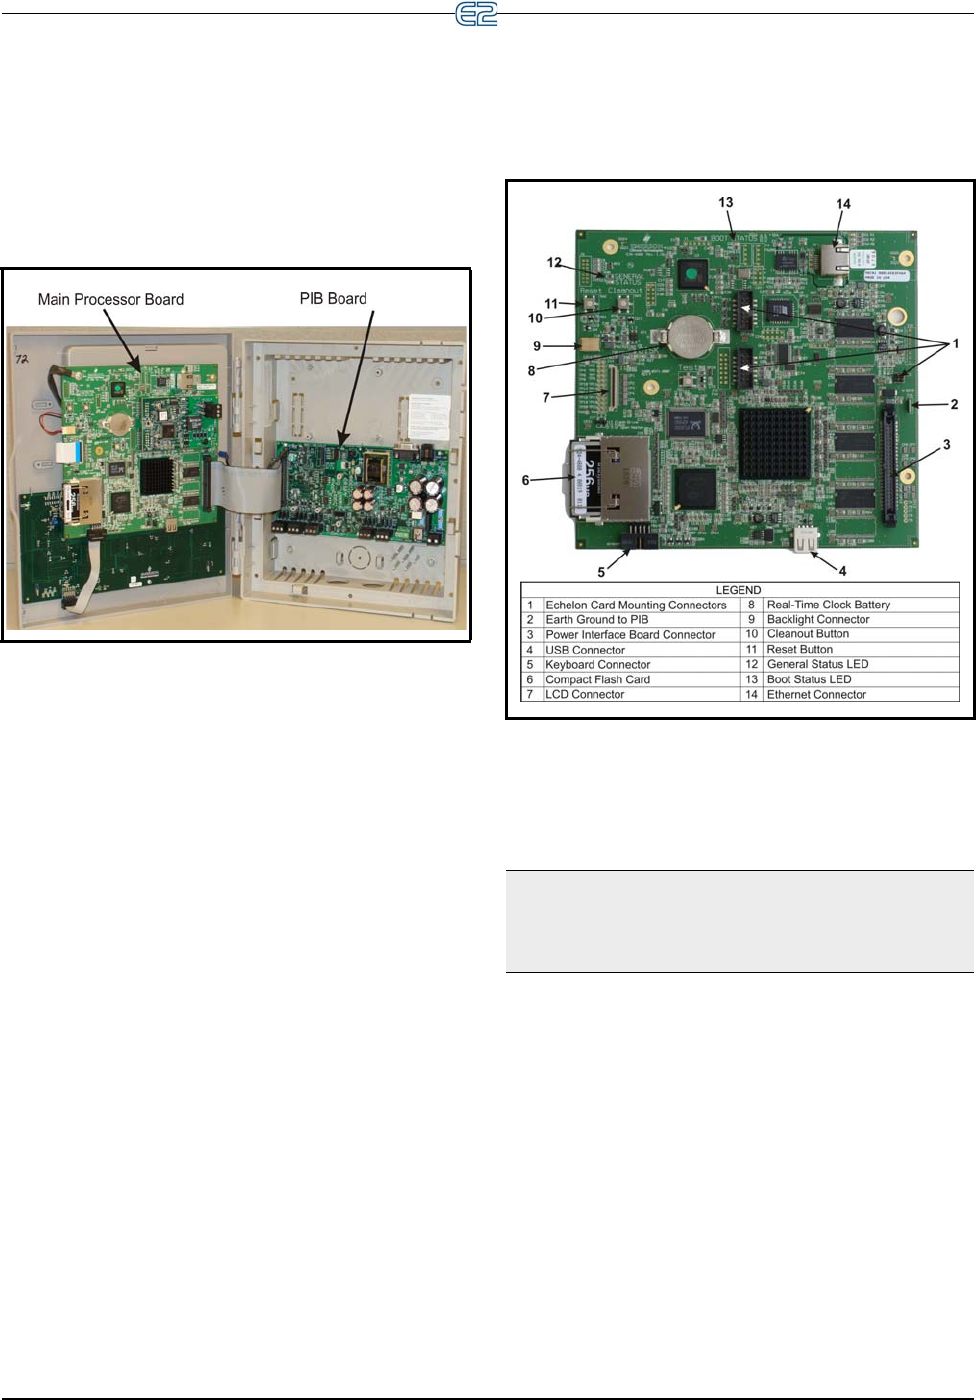 Emerson E2 Users Manual E3 Simplest1wattleddrivercircuitat220v120vpng Setting Up The Hardware Setup 4 1